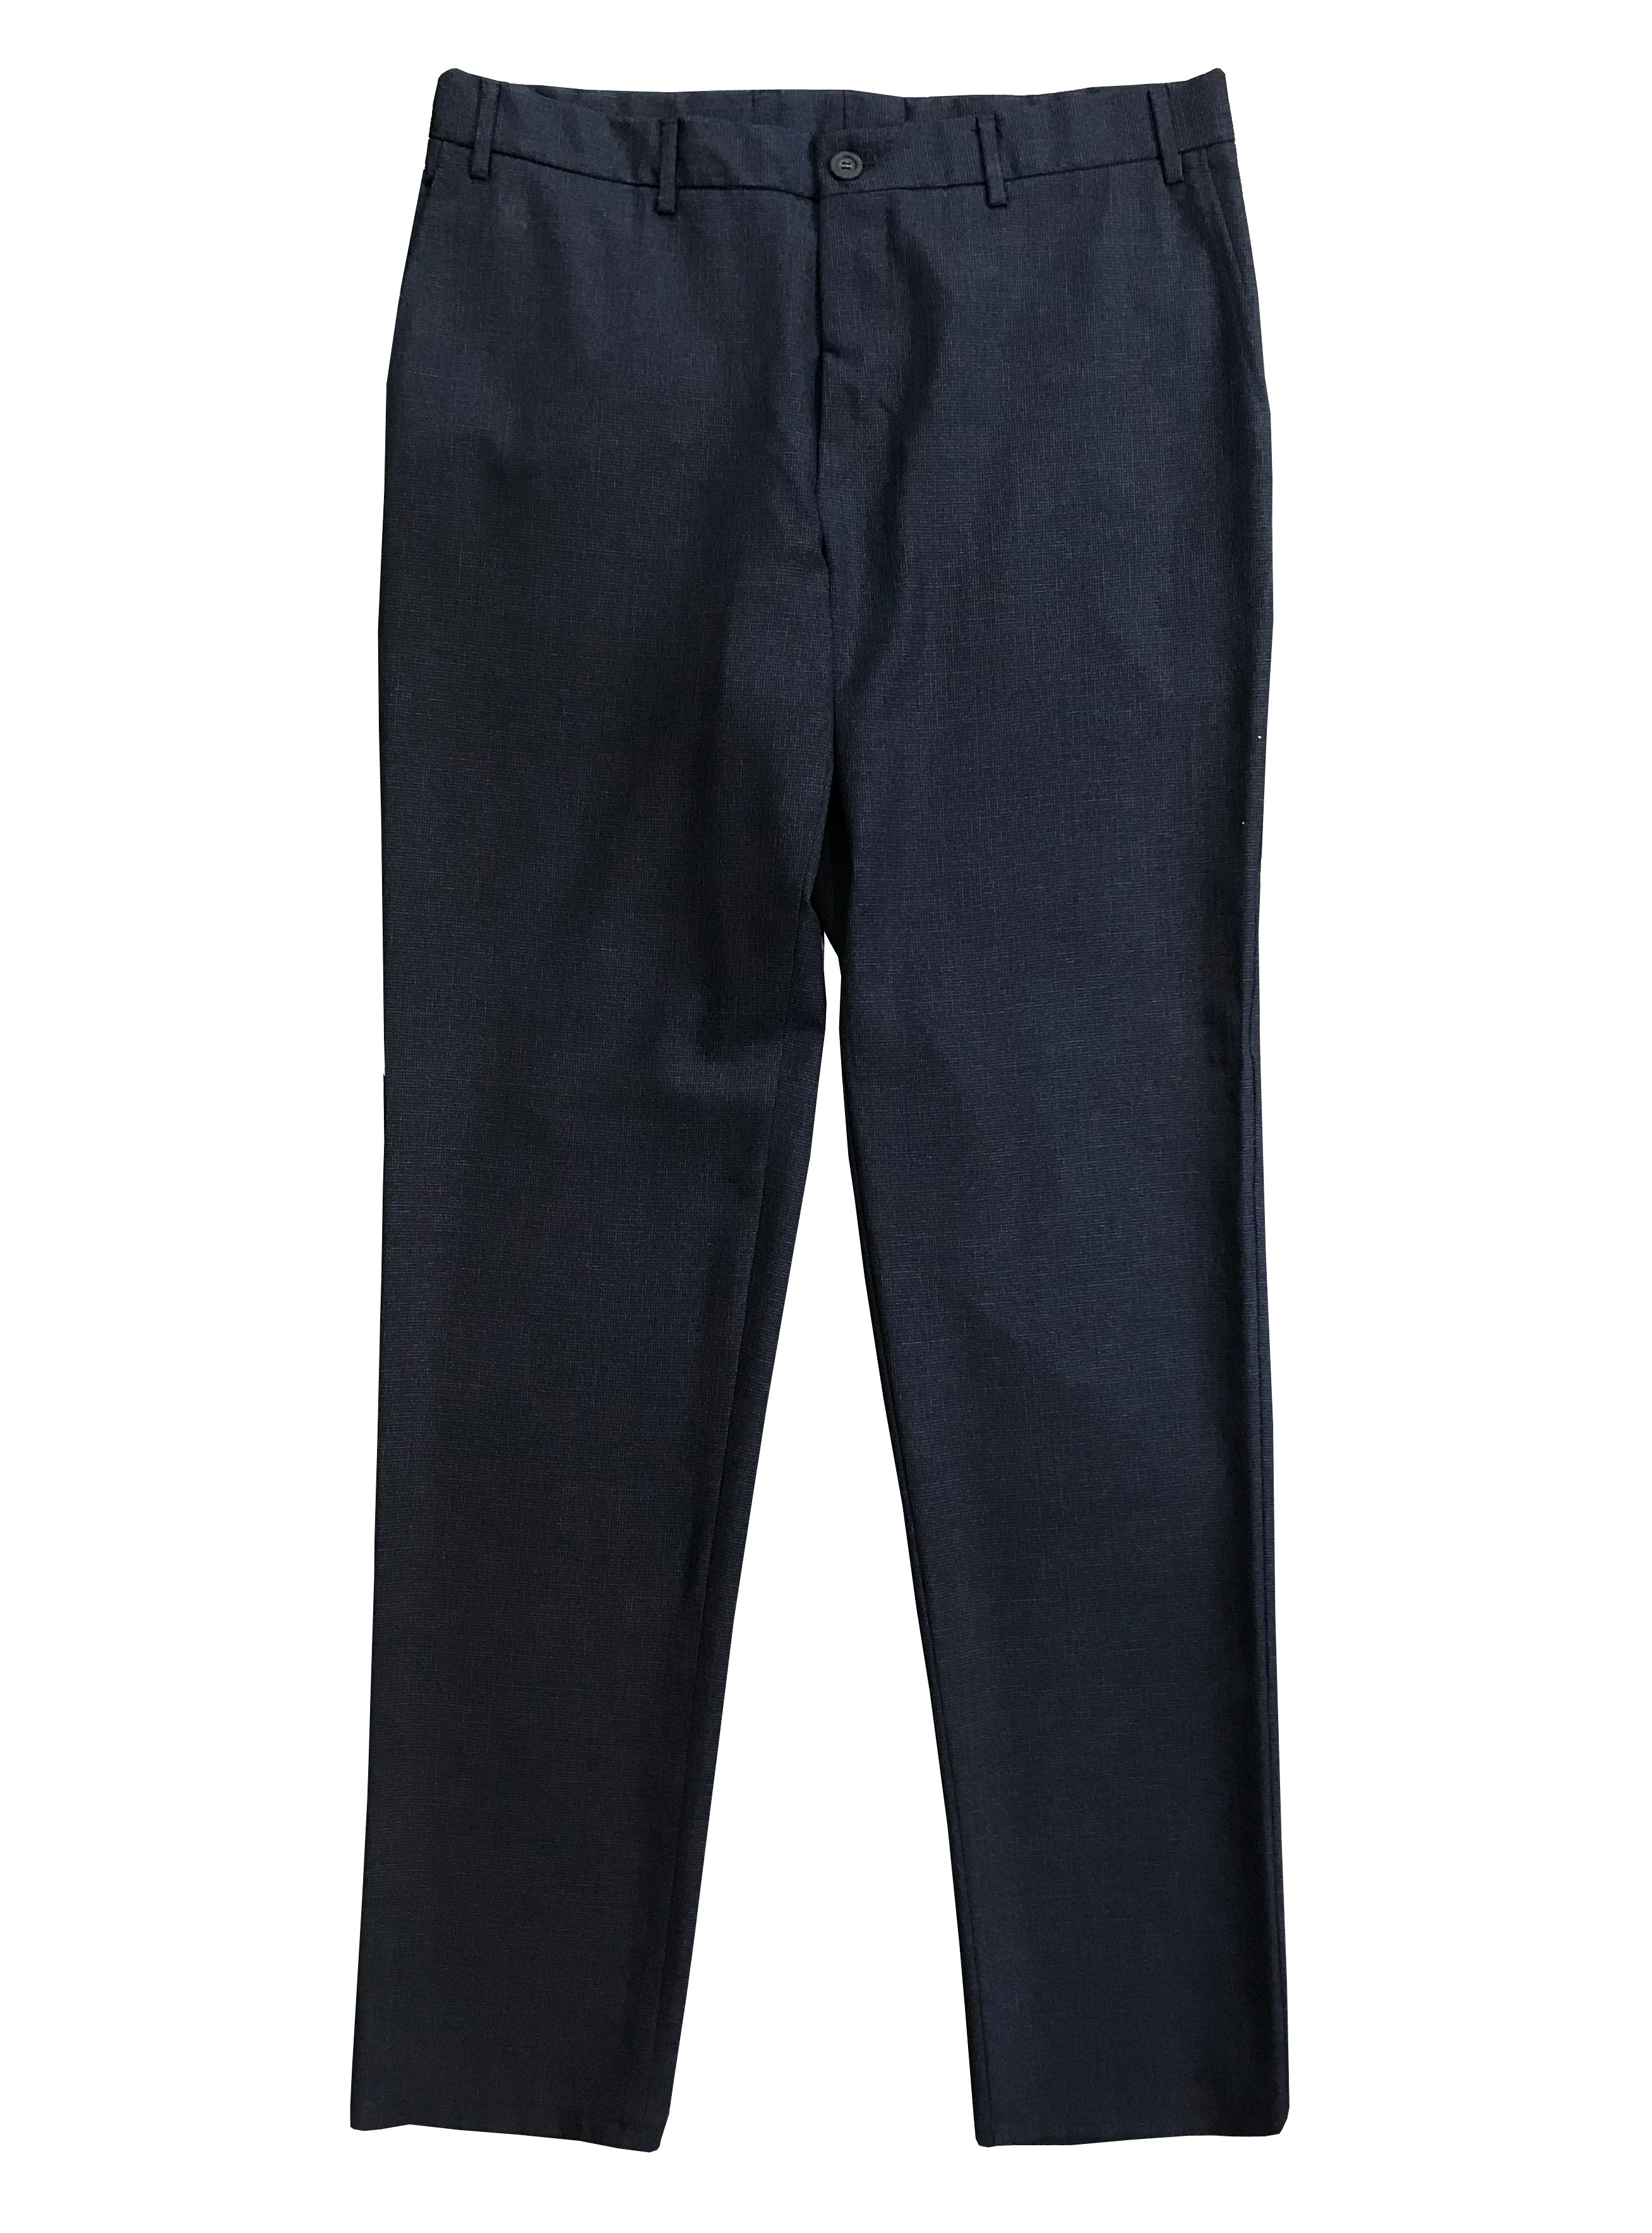 Canali - Dark Blue Micro Patterned Regular Fit Wool Trousers V1019 6R